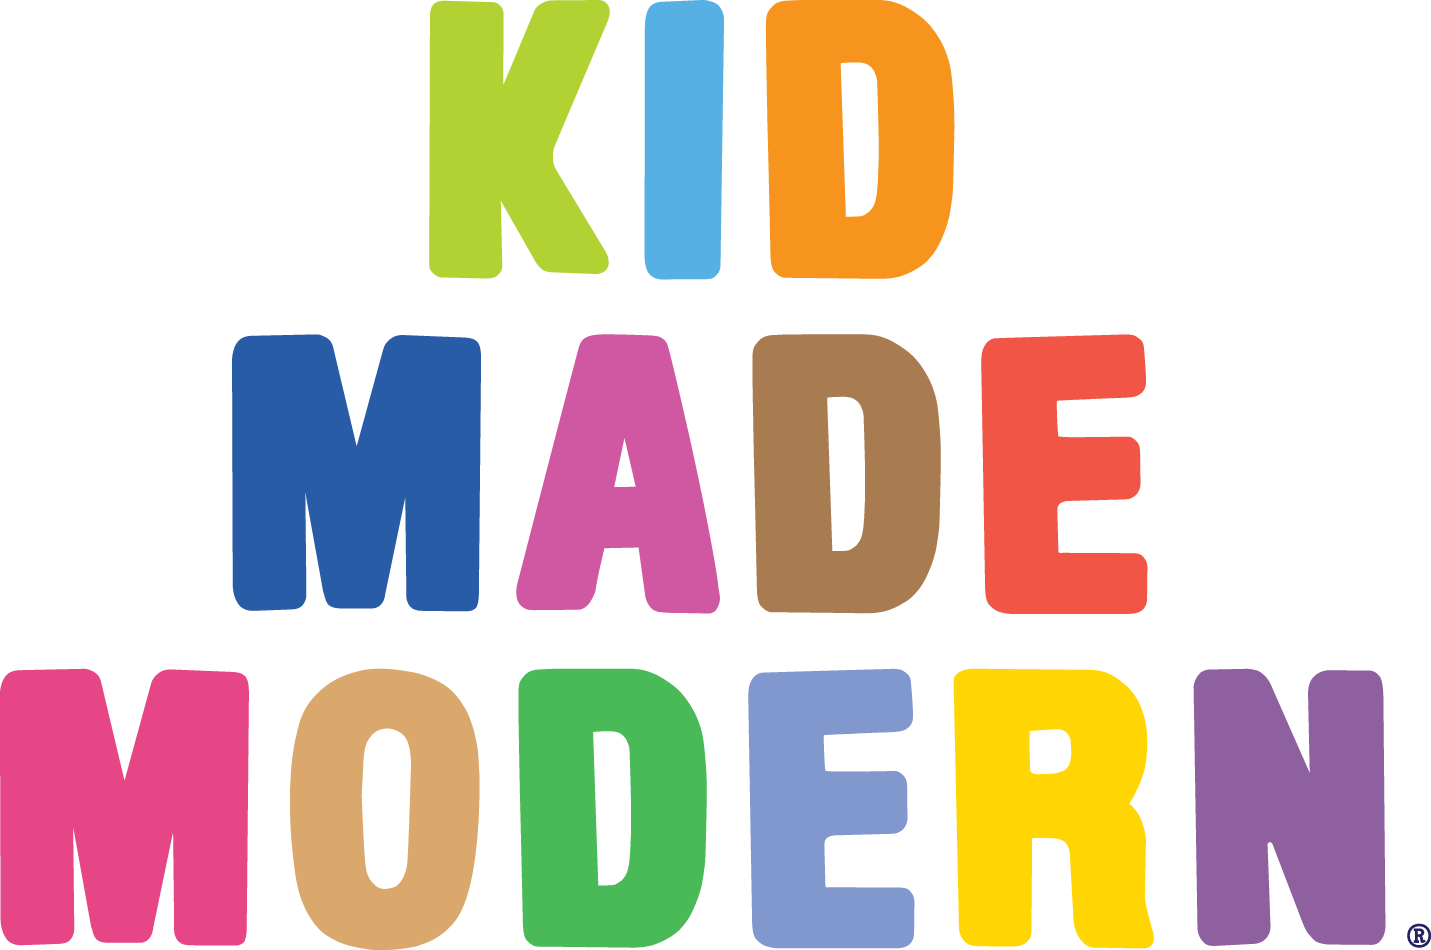 Kid Made Modern / Made Modern, LLC